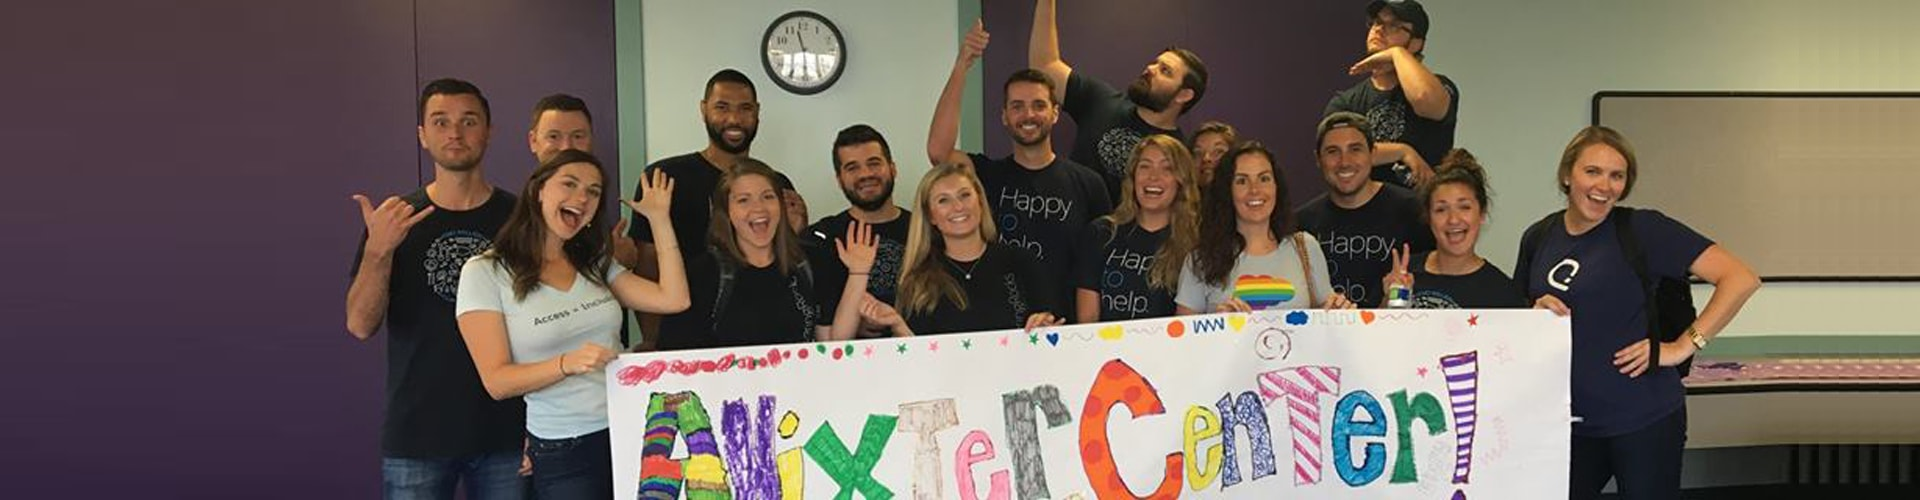 A group of Anixter Center helpers holding up a homemade sign that says Anixter Center!